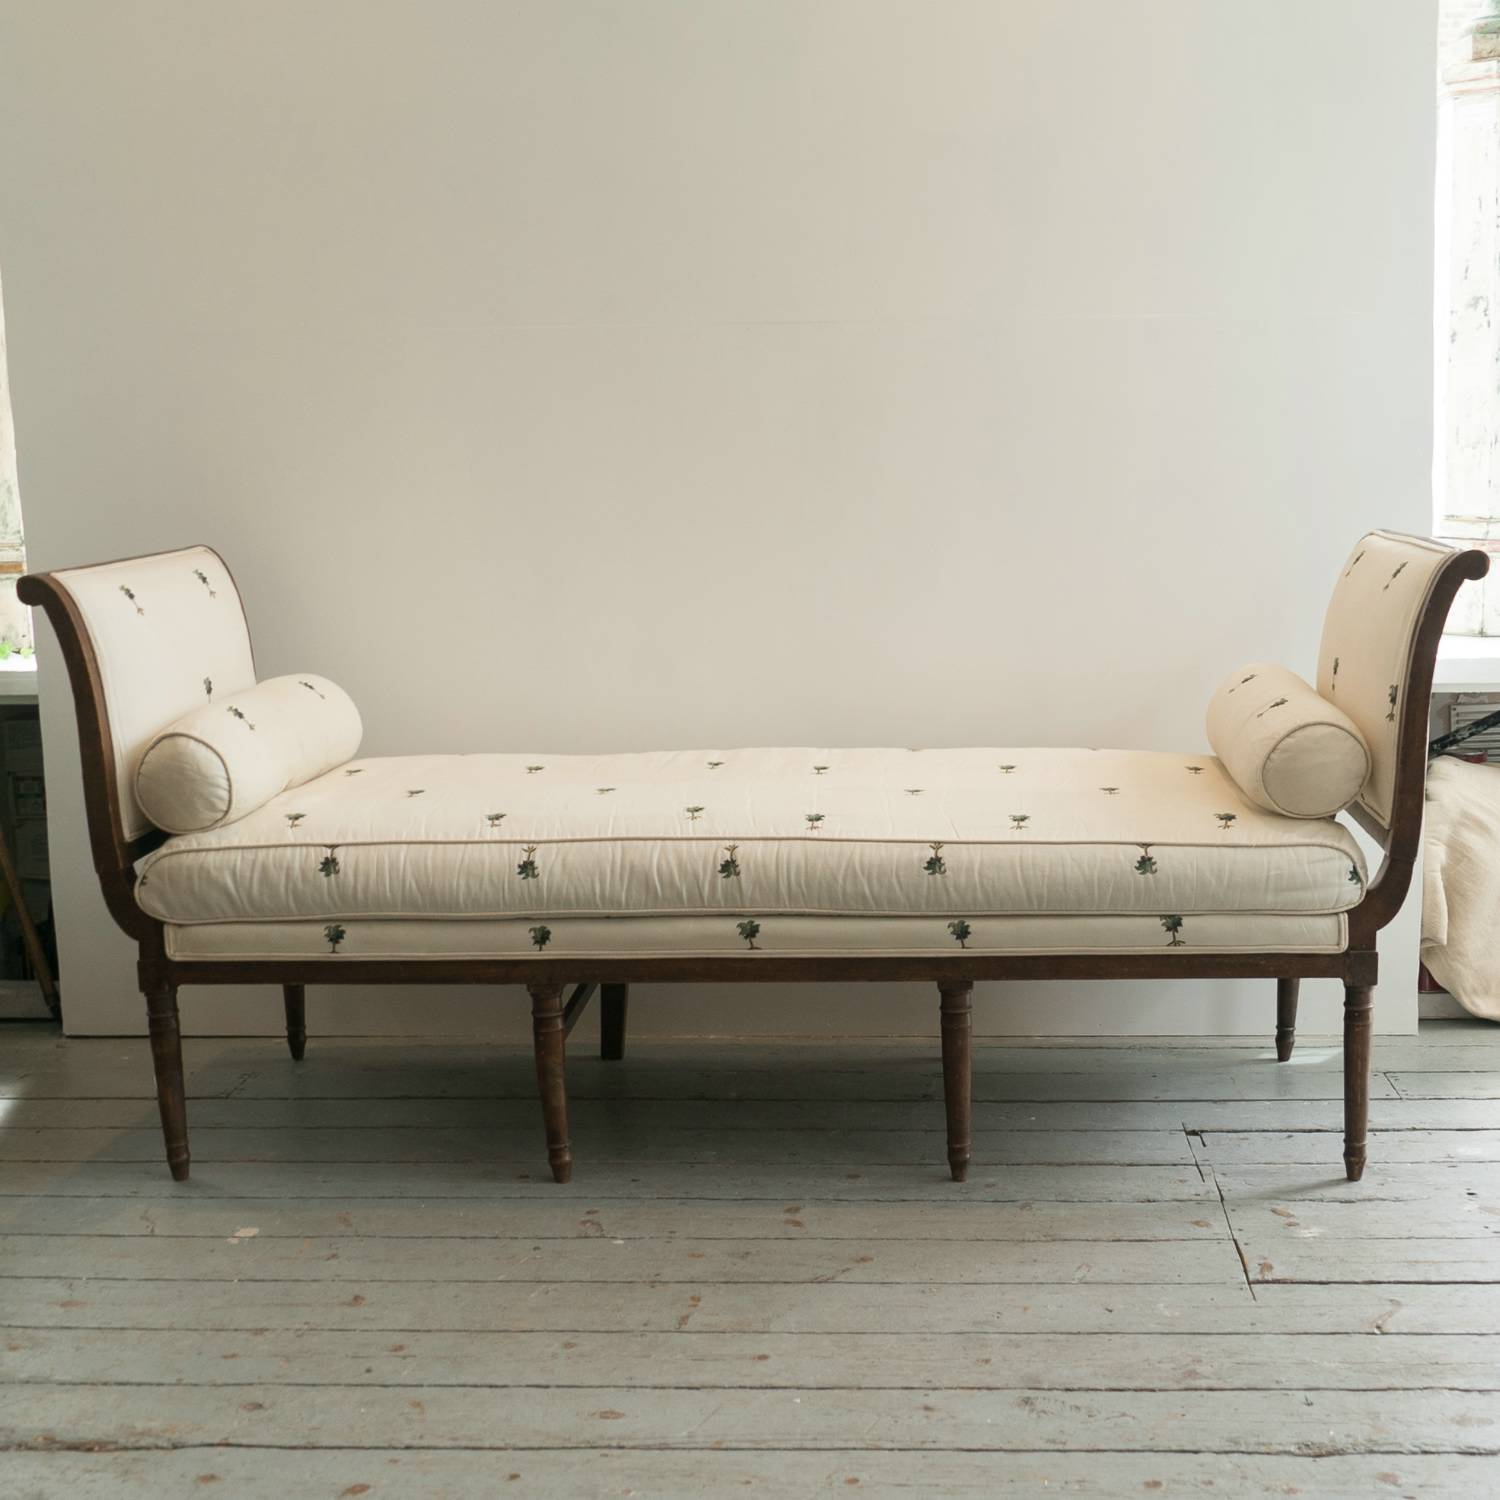 directoire m detail aace asp longue large french century antiques from catalogue charpentier chaise in